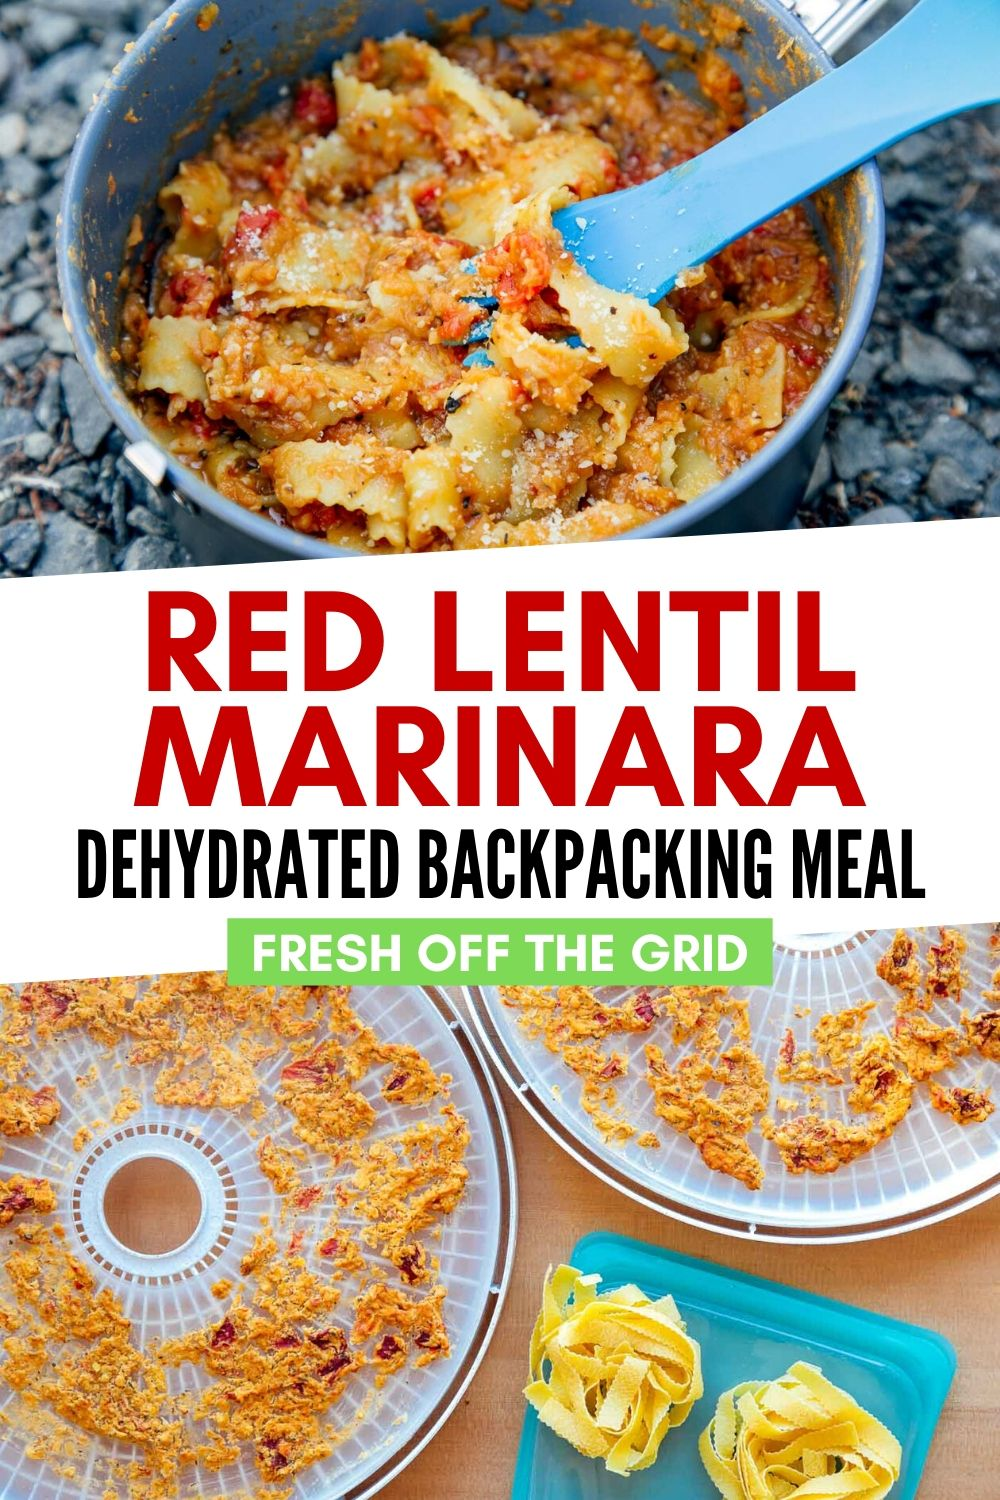 Saucy, hearty, and deeply satisfying, this backpacking red lentil marinara pasta is exactly what we want after a long day on the trail. DIY Backpacking Food | Dehydrator recipe via @freshoffthegrid